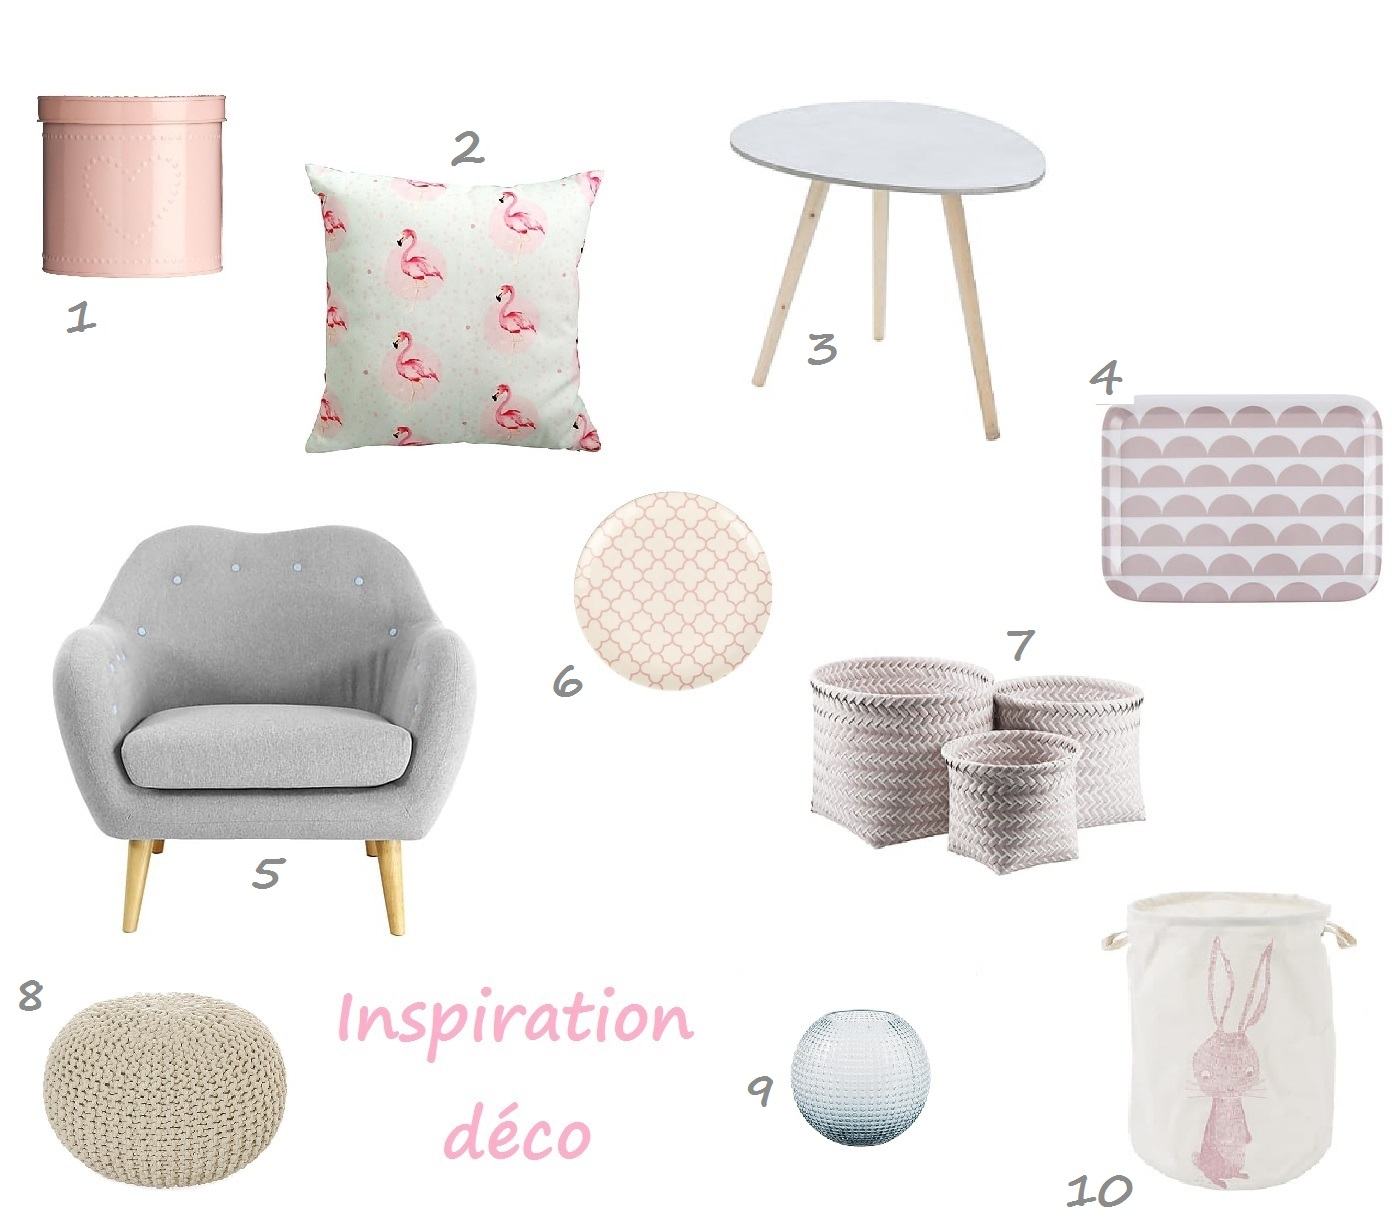 déco décoration home inspiration inspi inspo scandinave tendance le mog westwing stooly twix sostrenegrene action zodio gigastore